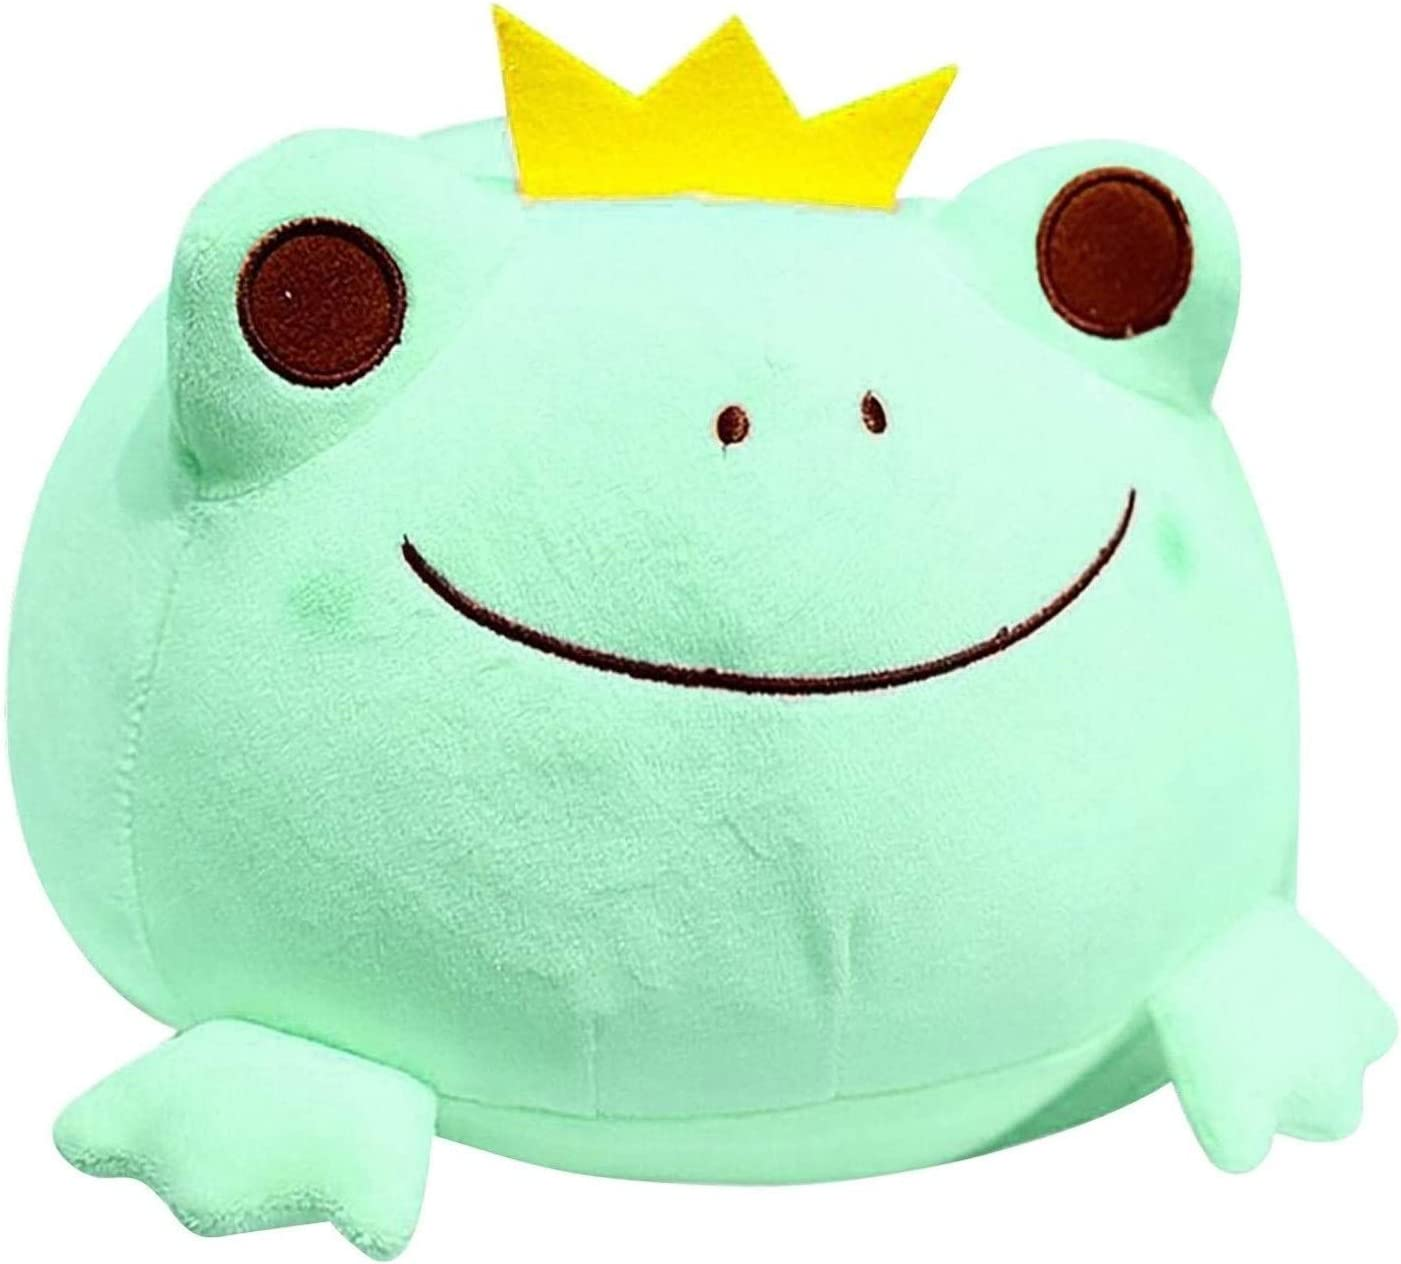 Andees Durable Frog Stuffed Animal Stretchy Plush Frog Crown Pillow Doll Cuddly Gift for Birthday Kids Girls Boys Frogs Plushies 17, Green Super Soft Frog Plush Frog Stuffed Animal Toys